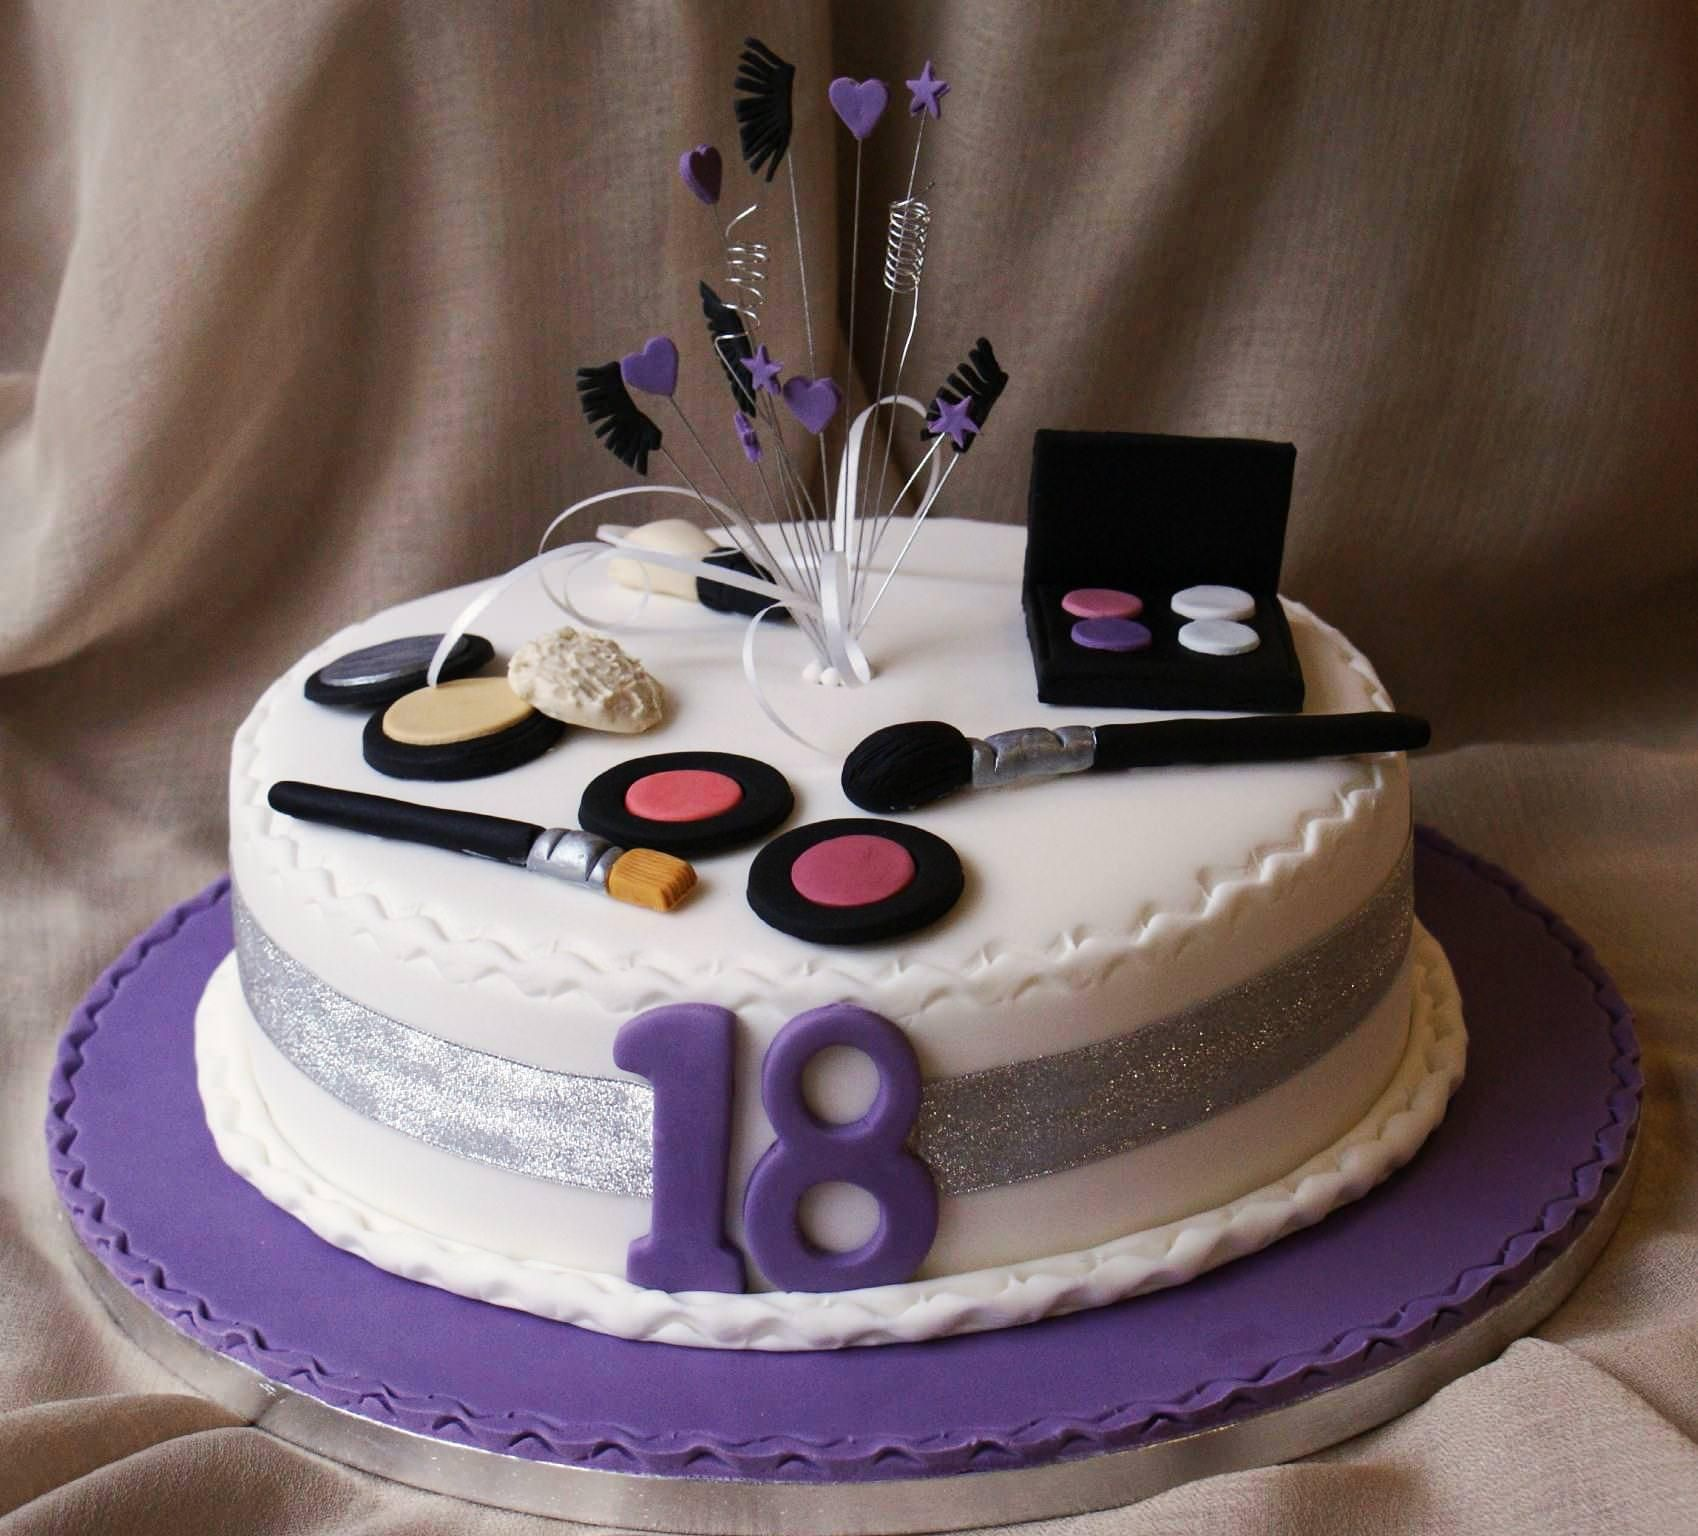 Cake Designs Birthday 2018 : 18th Birthday Cakes both for Boys and Girls cake ideas ...